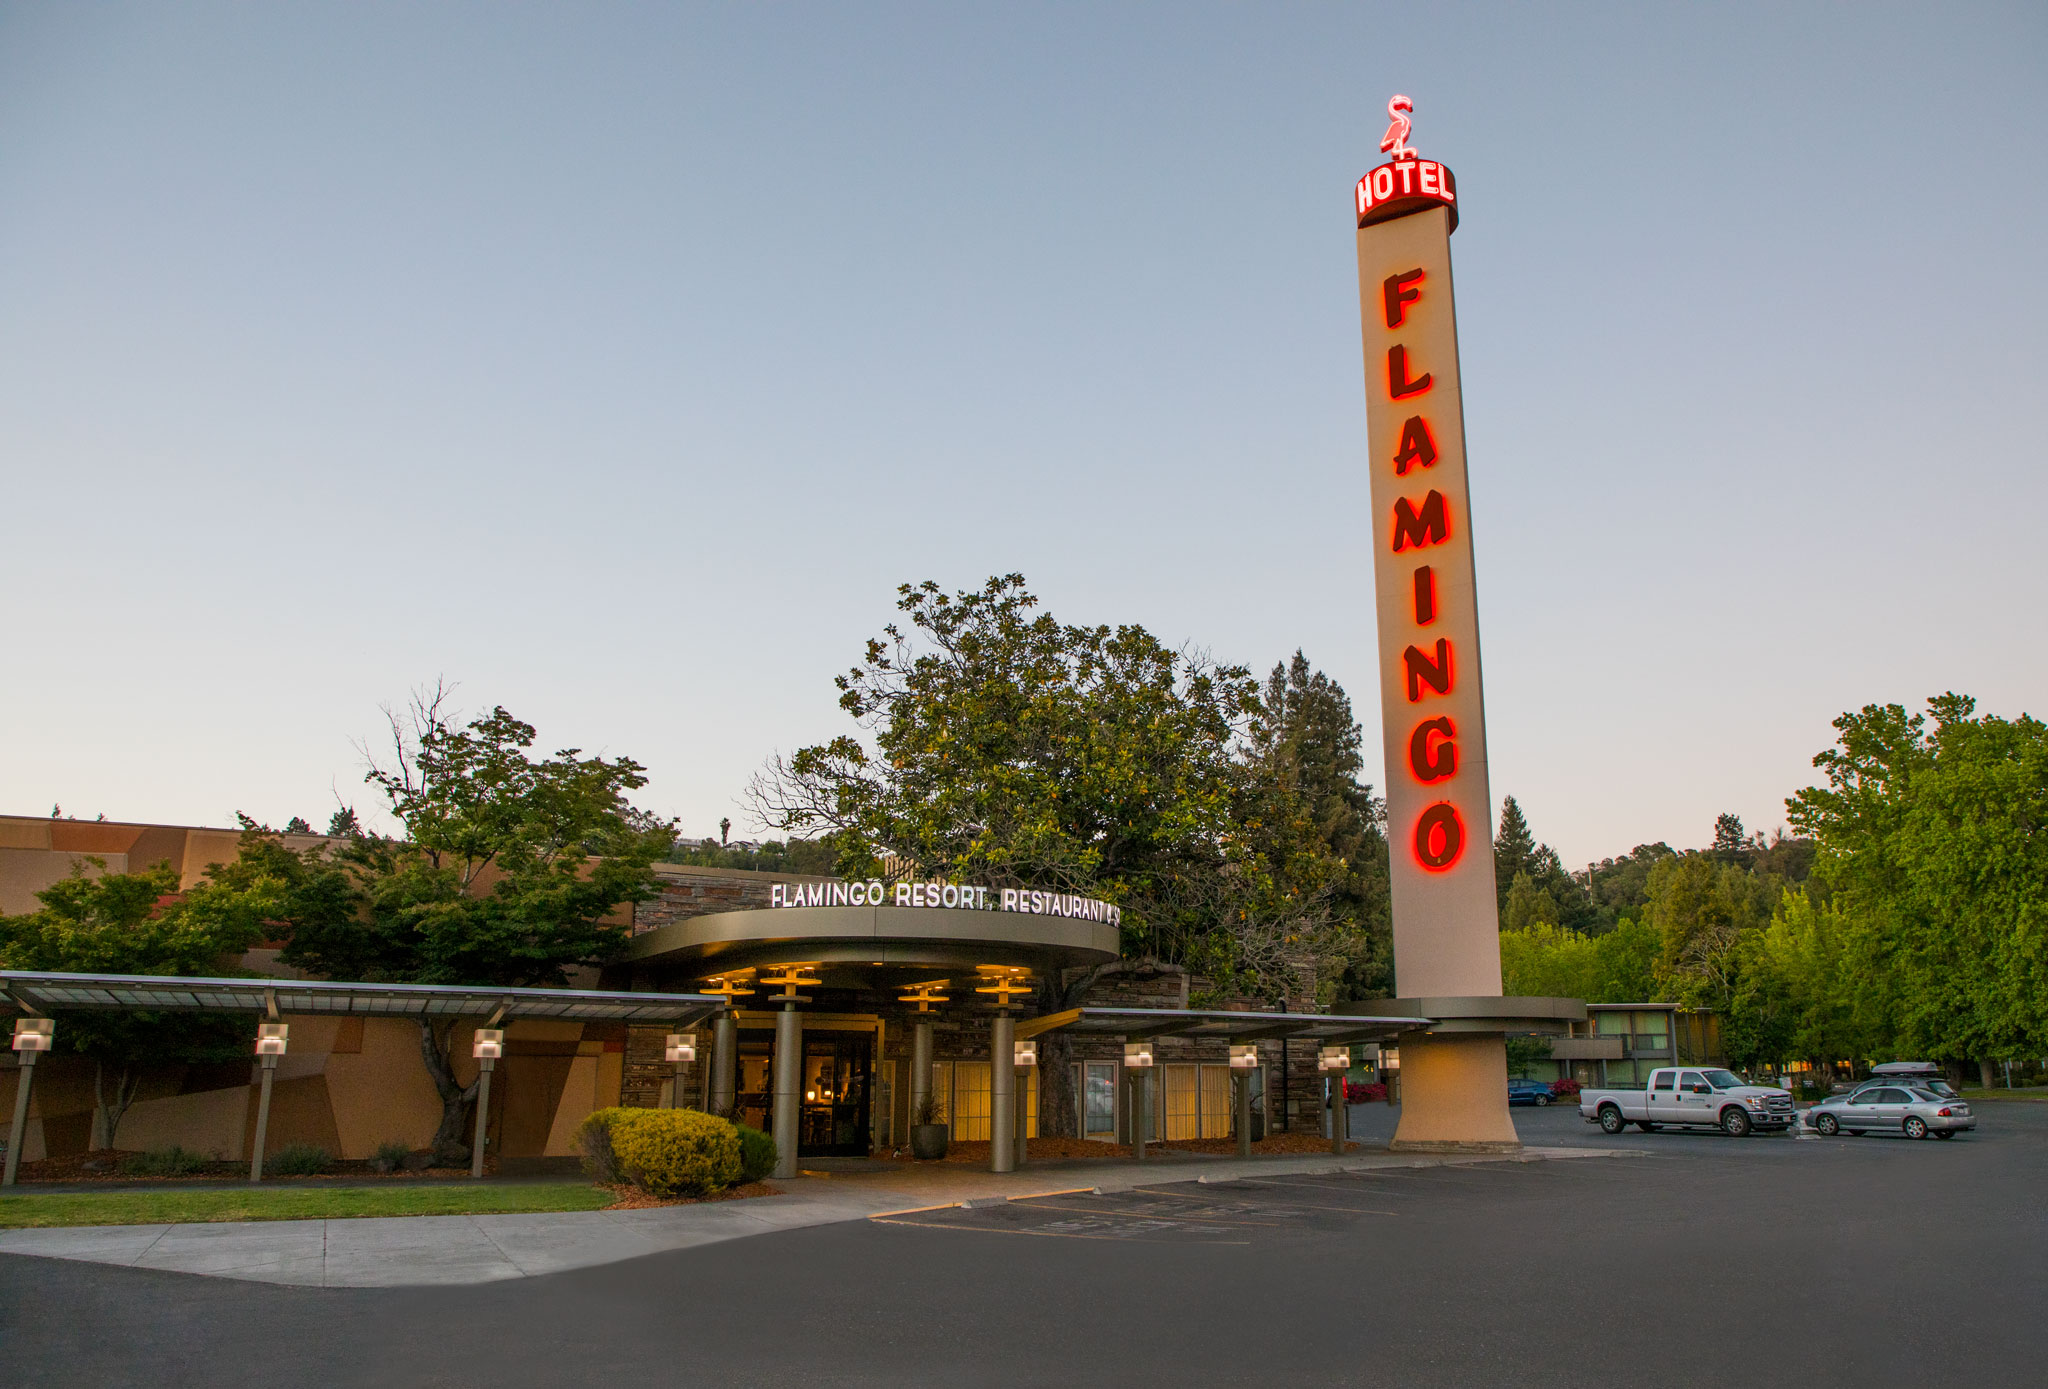 Flamingo Resort Front Entrance And Parking Lot